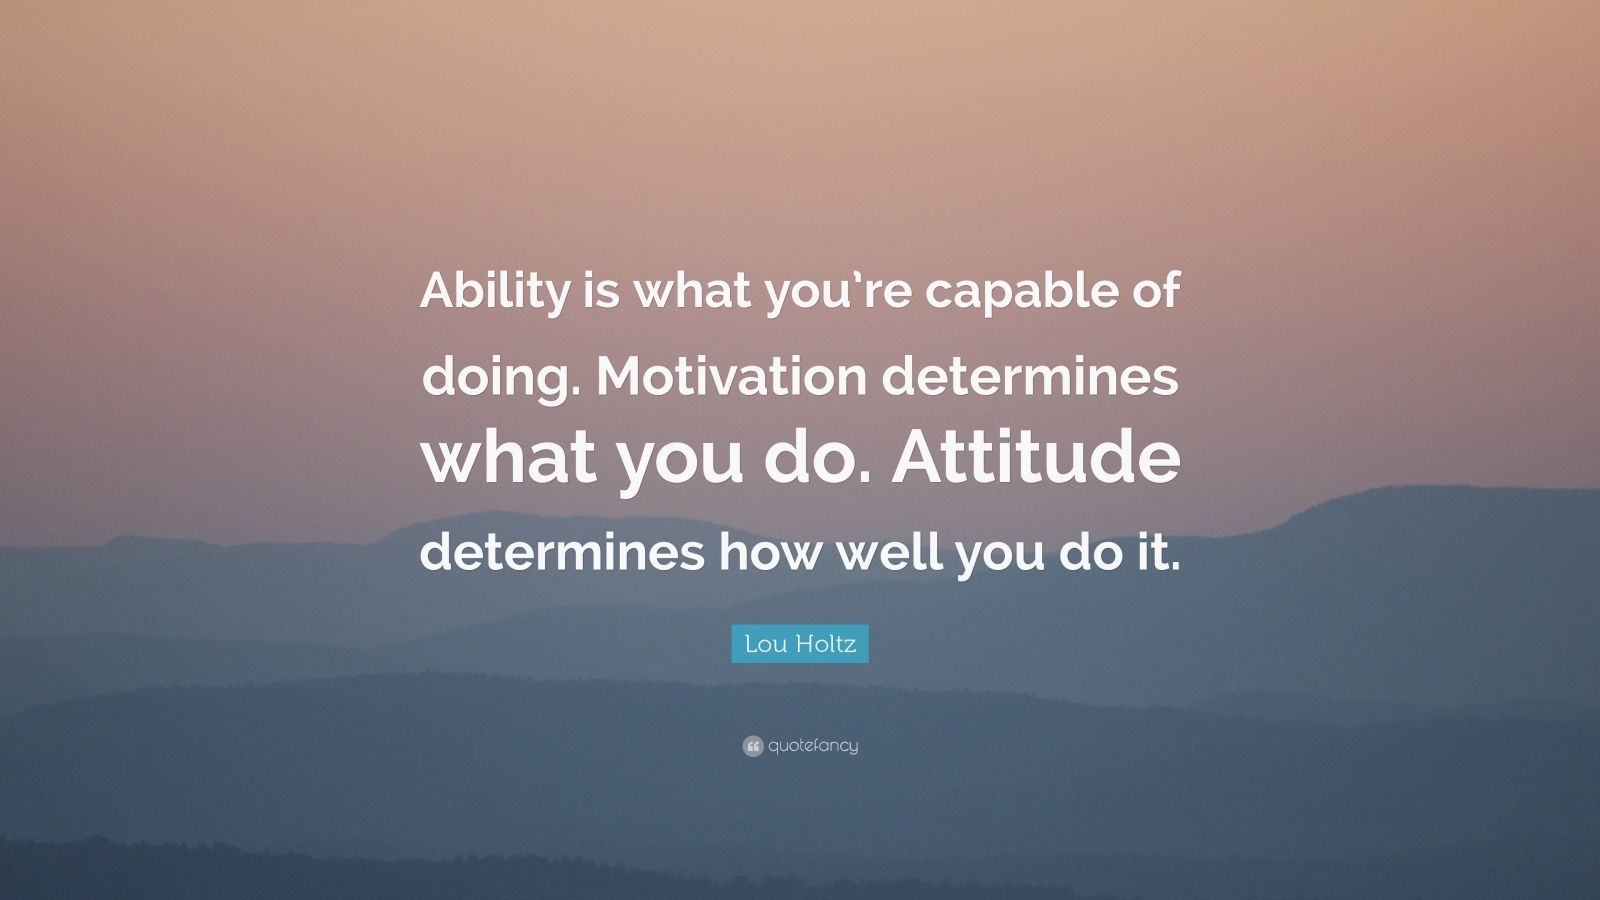 Football Motivational Quotes Wallpaper Lou Holtz Quote Ability Is What You Re Capable Of Doing